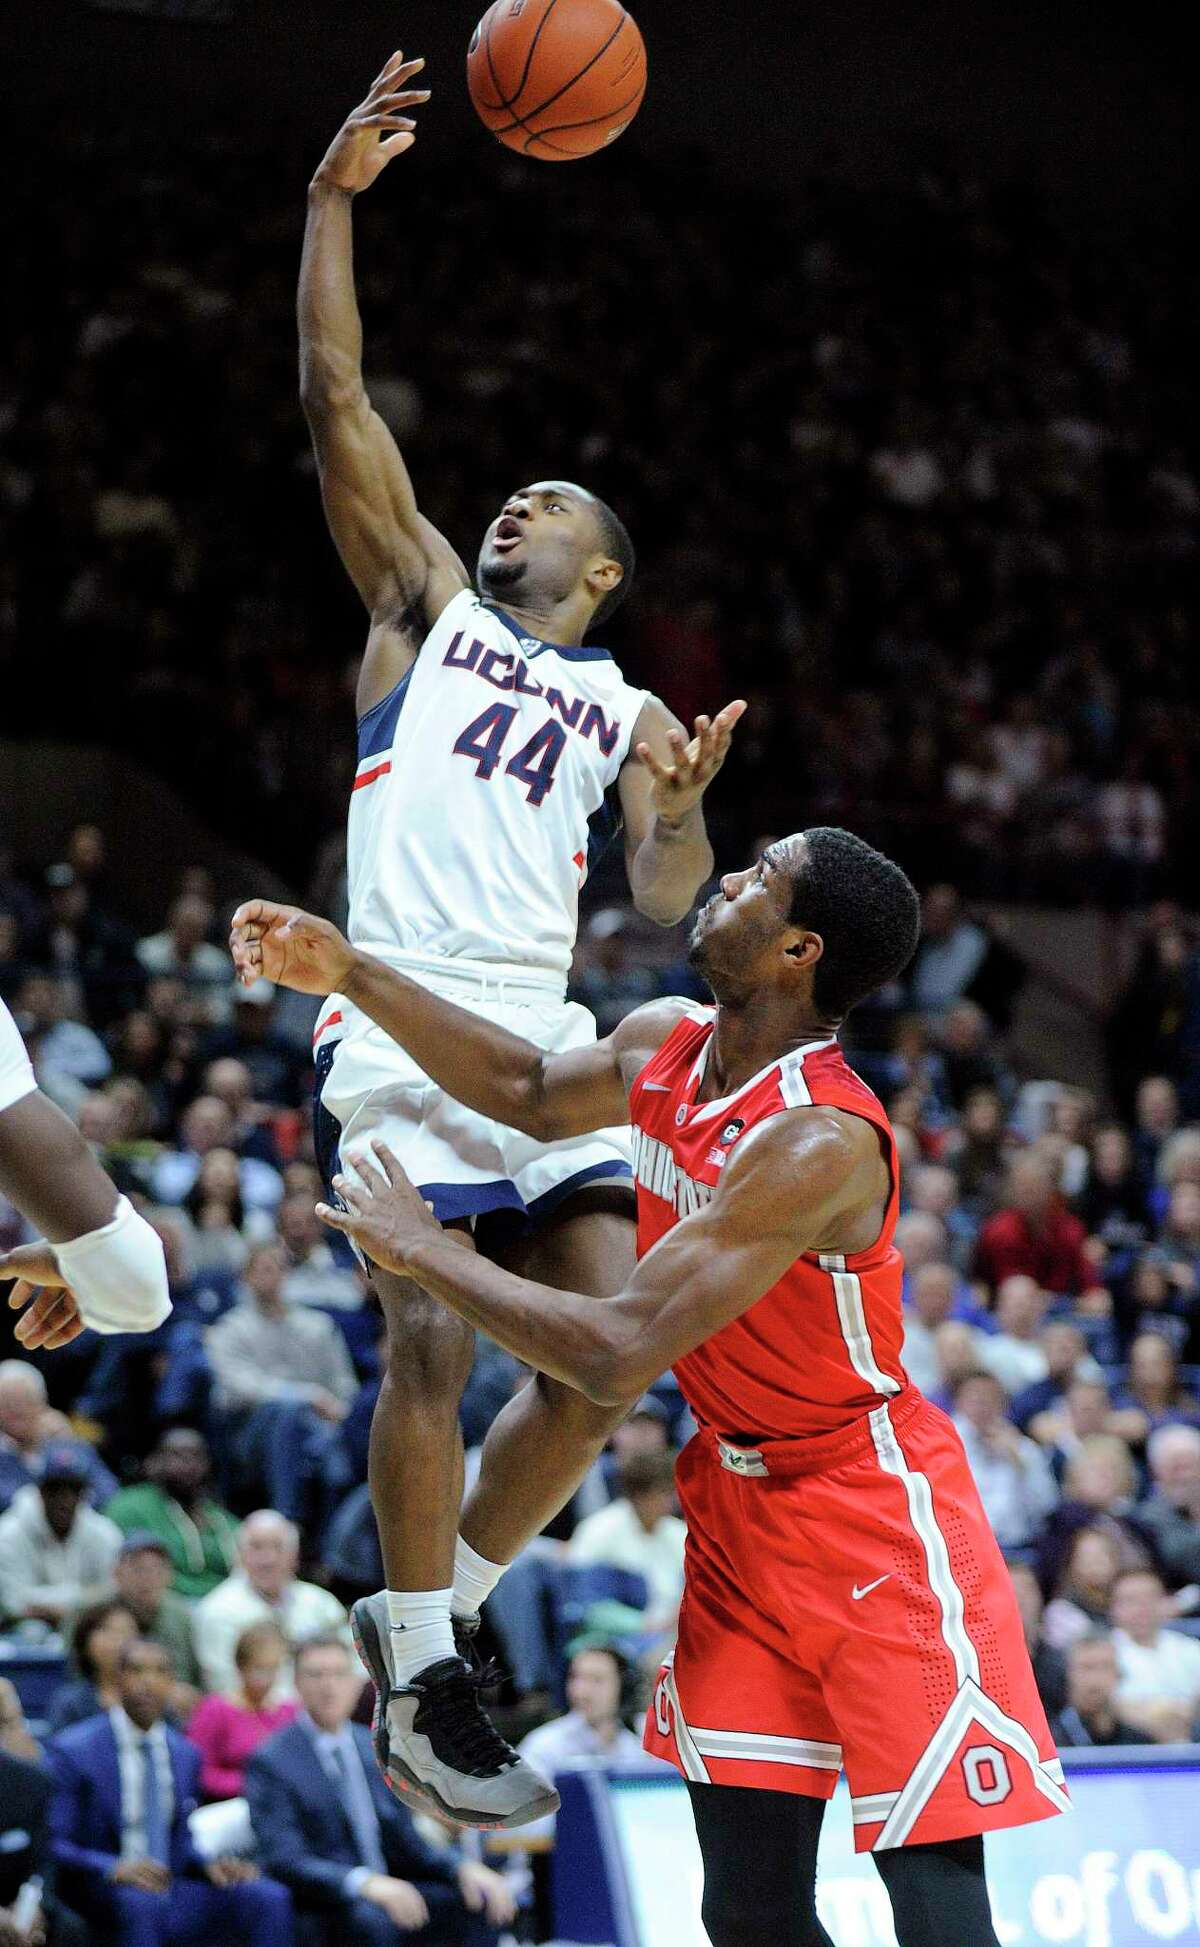 UConn's Rodney Purvis (44) has scored in double figure in each of the Huskies' nine games this season.